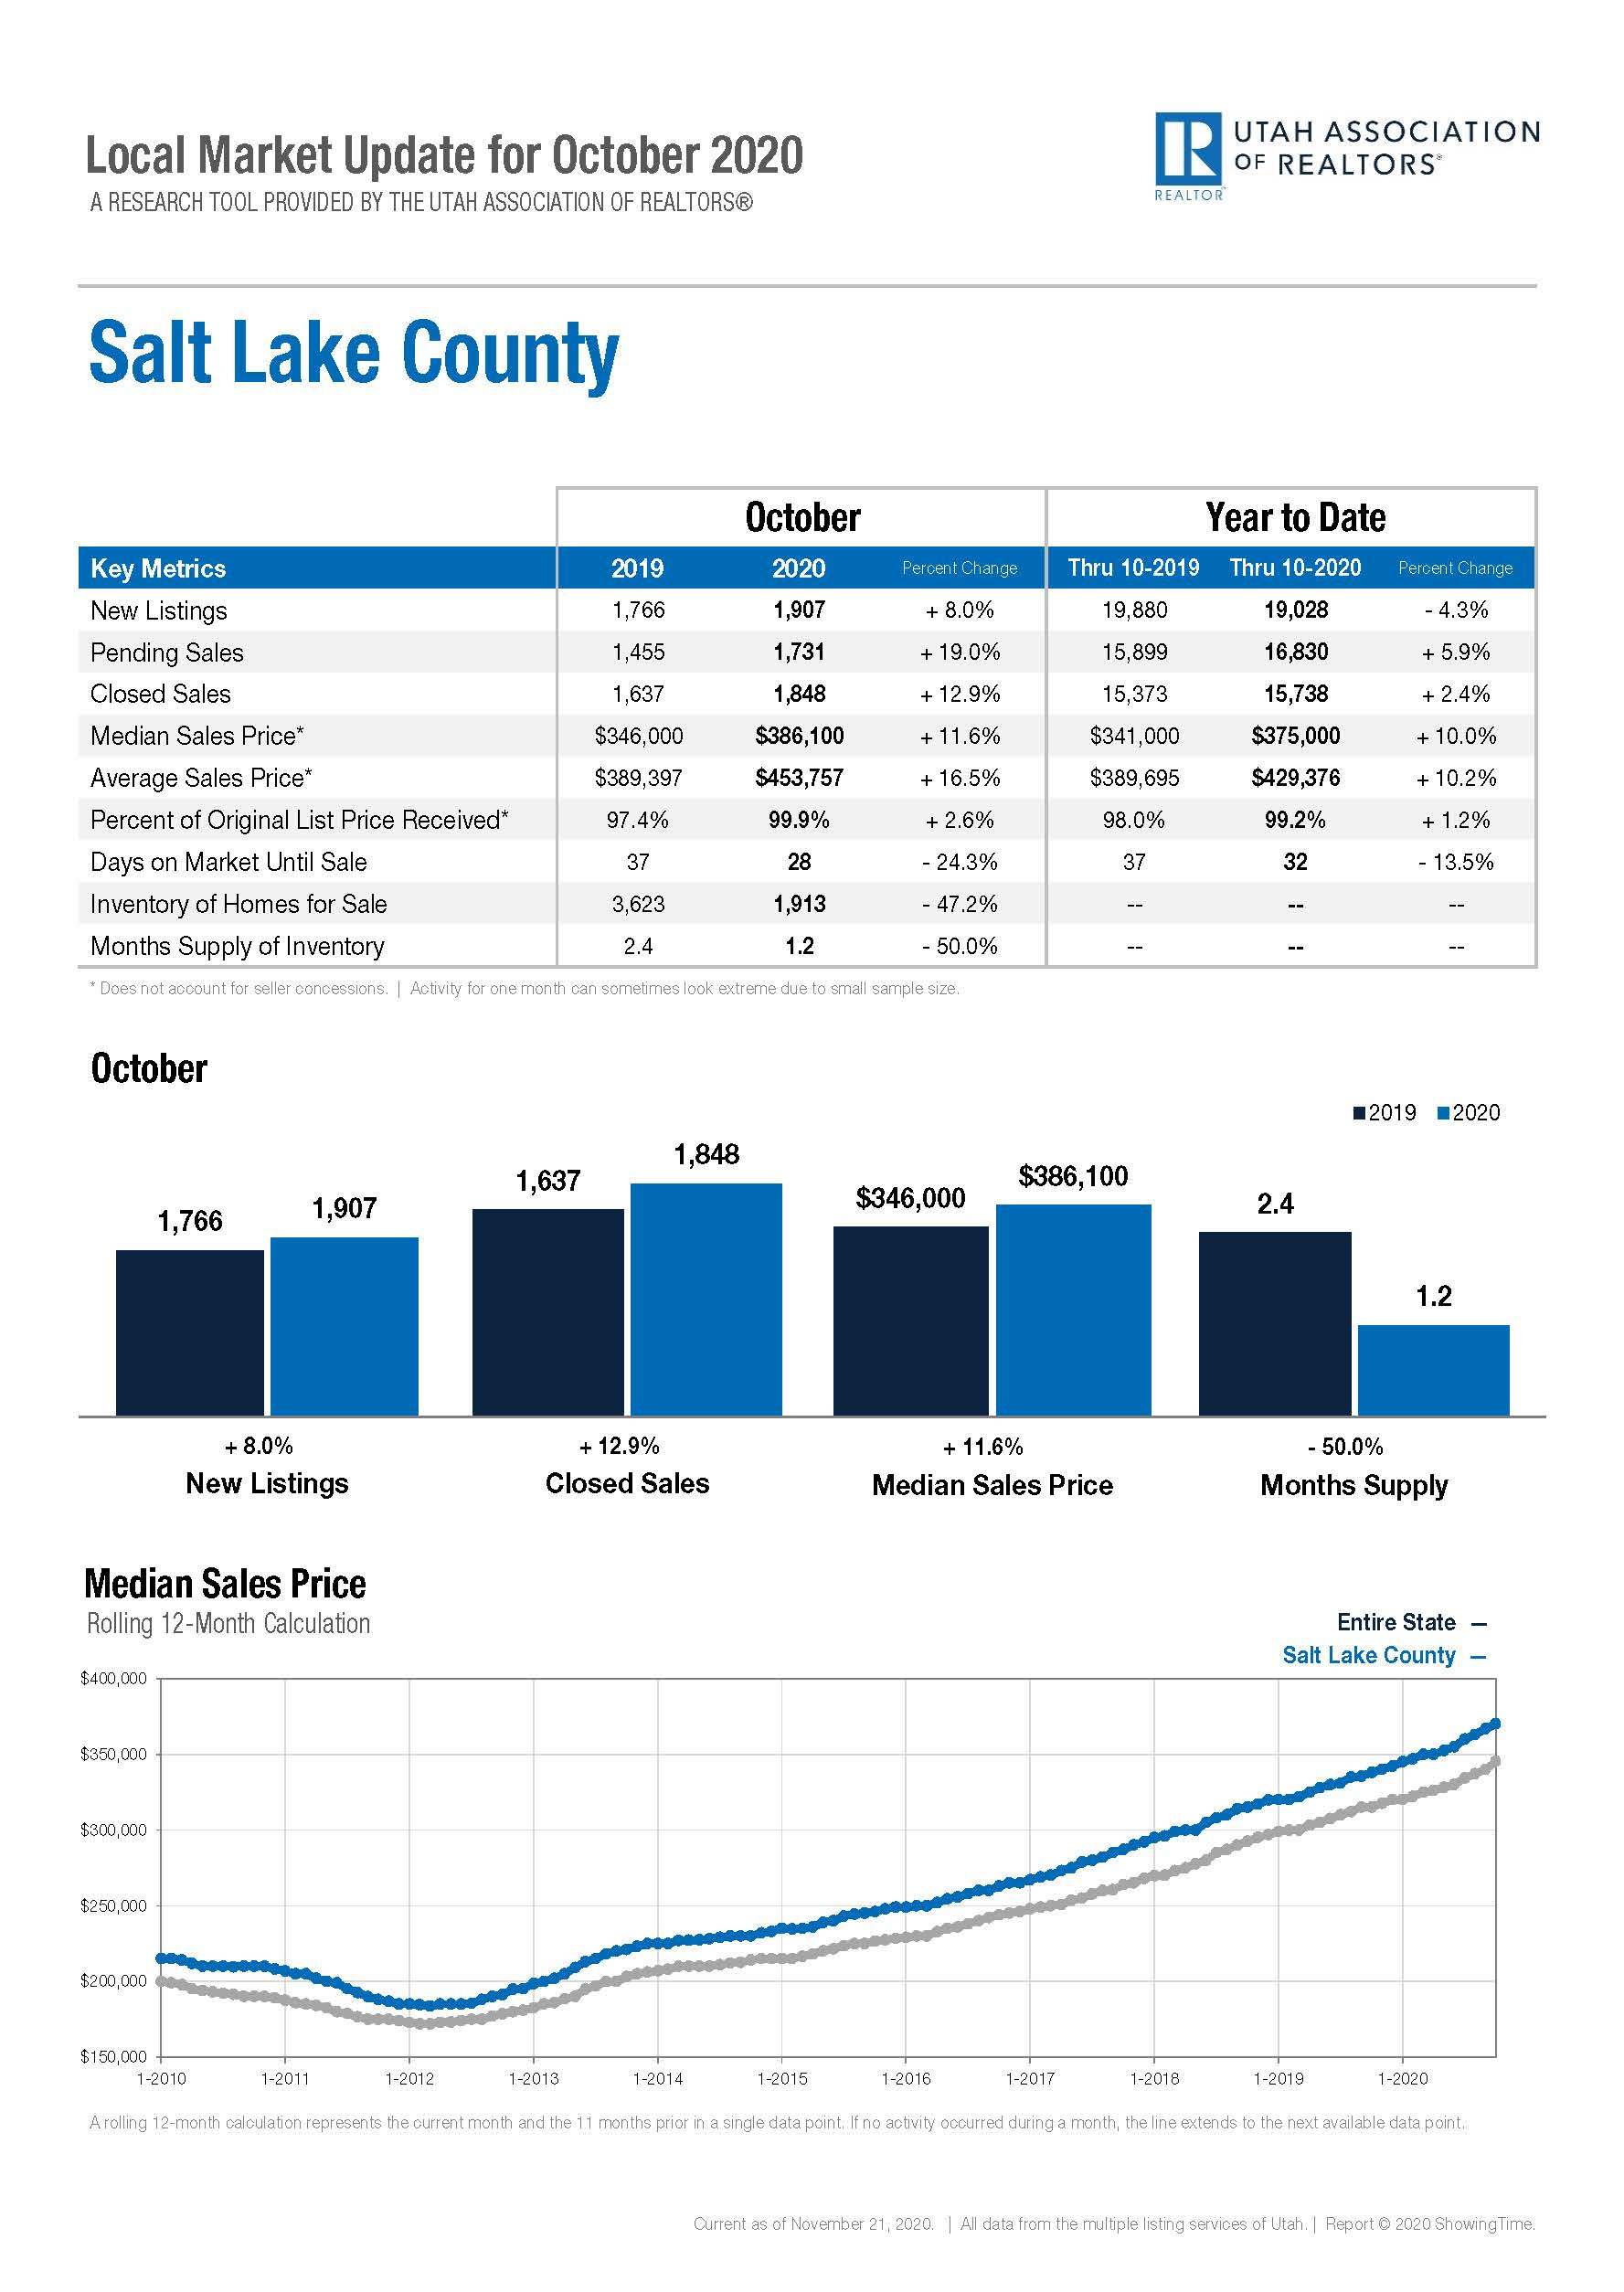 Local Marketing Update Salt Lake County - October 2020